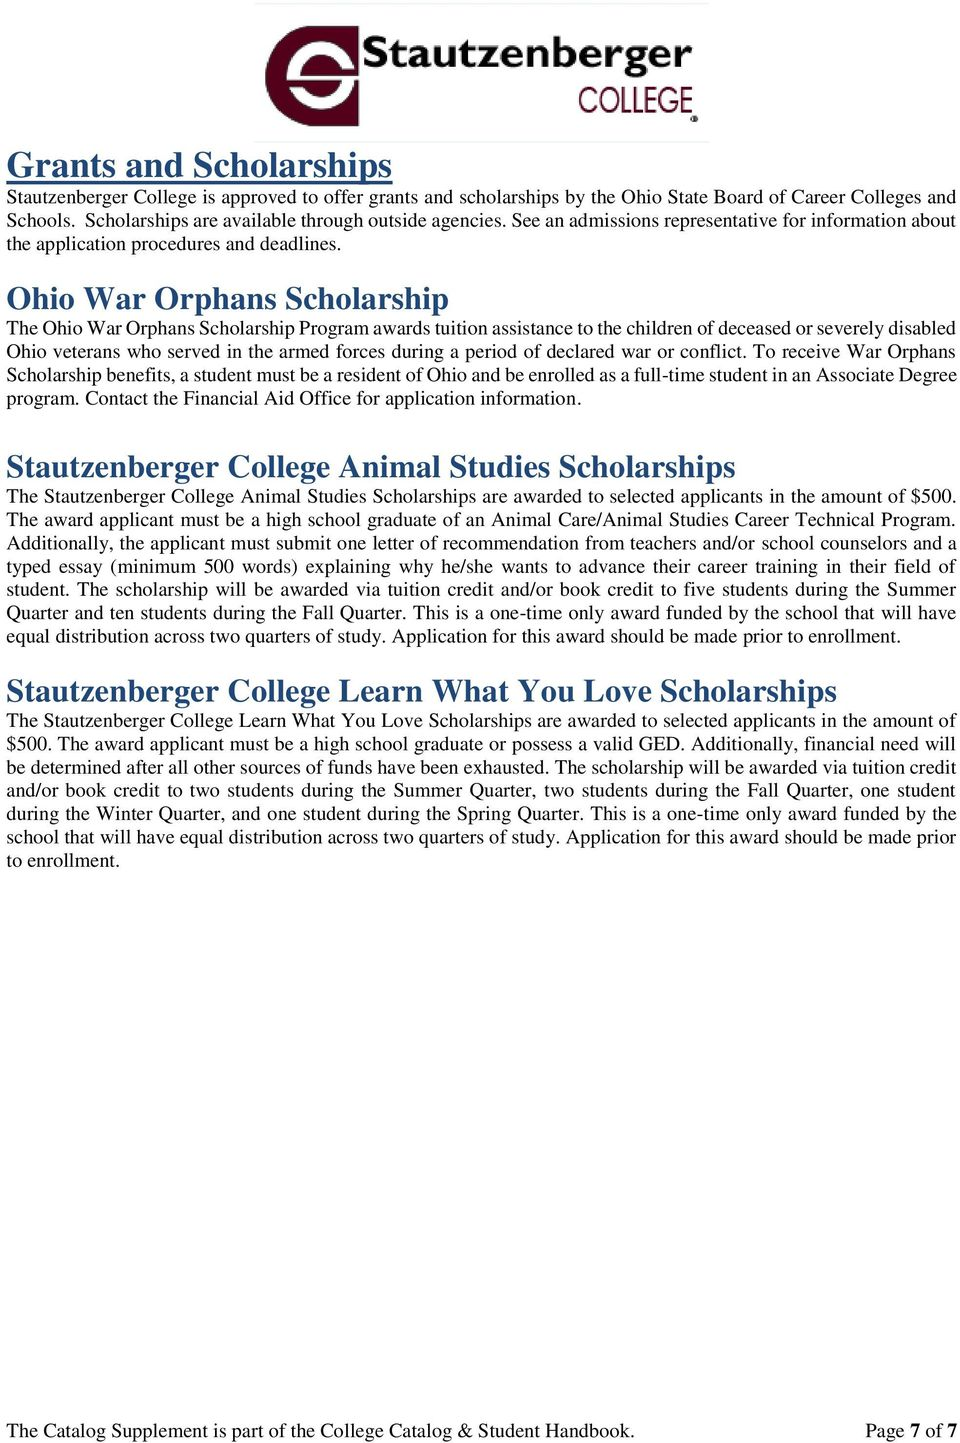 Ohio War Orphans Scholarship The Ohio War Orphans Scholarship awards tuition assistance to the children of deceased or severely disabled Ohio veterans who served in the armed forces during a period